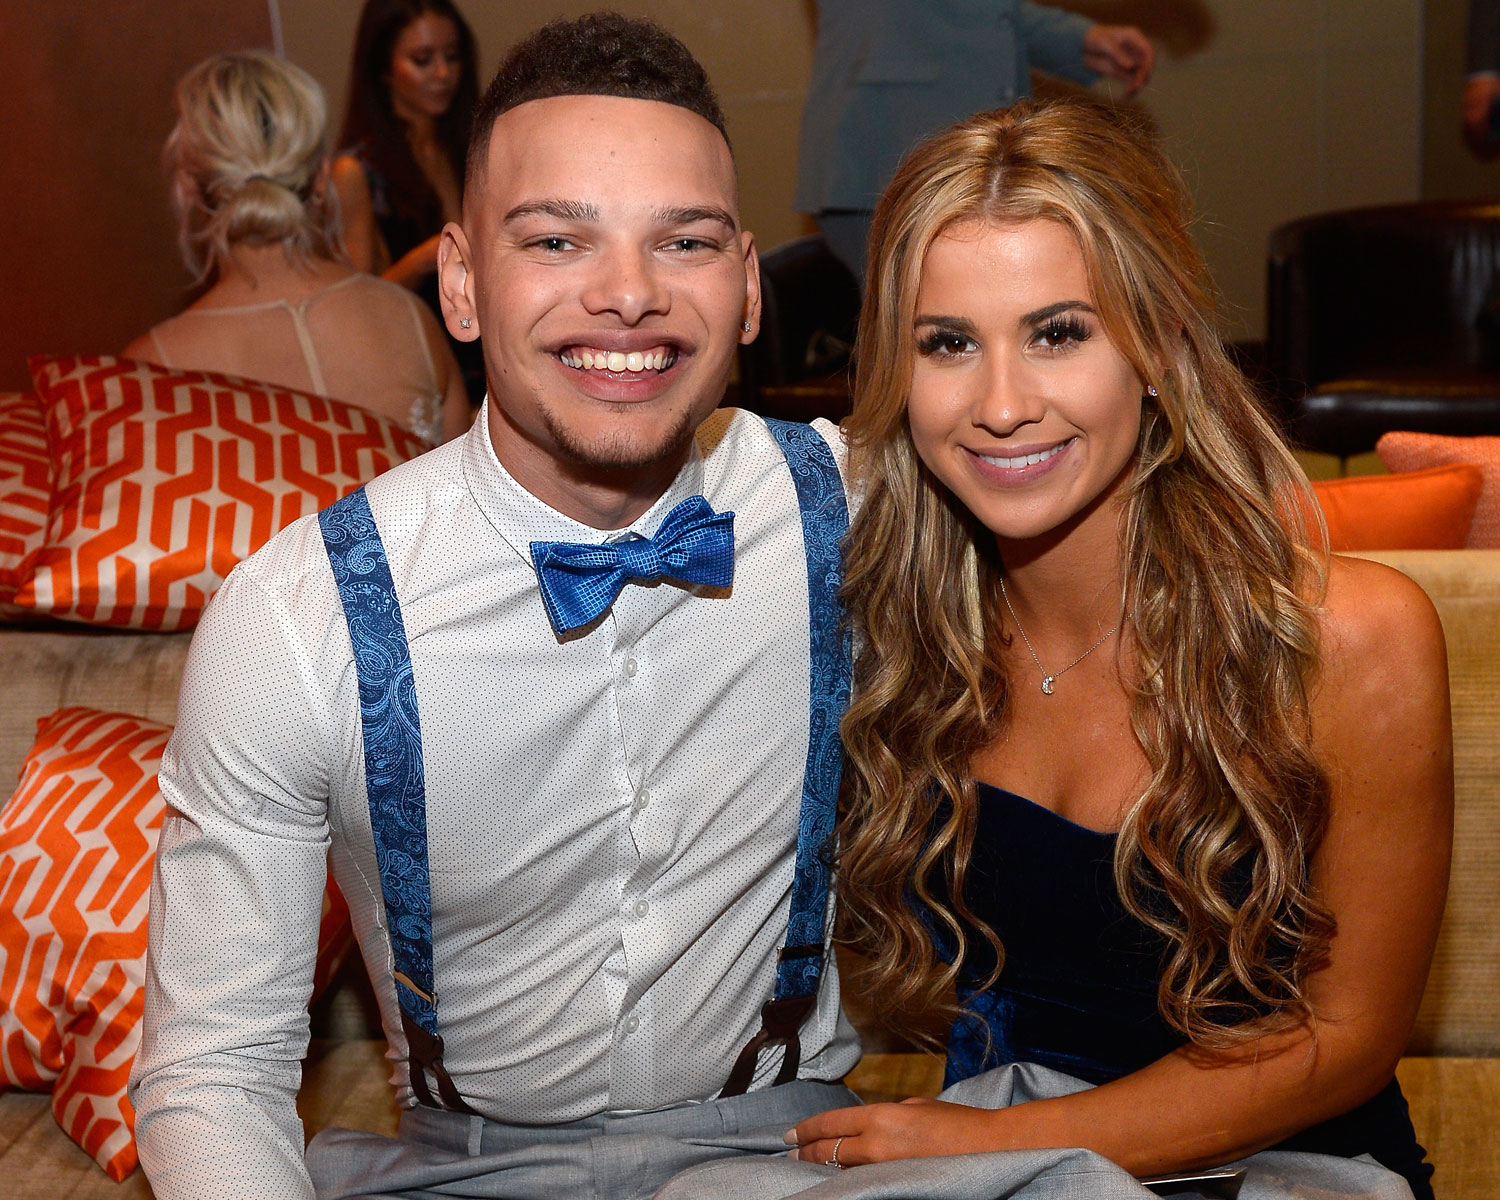 Country Singer Kane Brown Is Engaged to Katelyn Jae